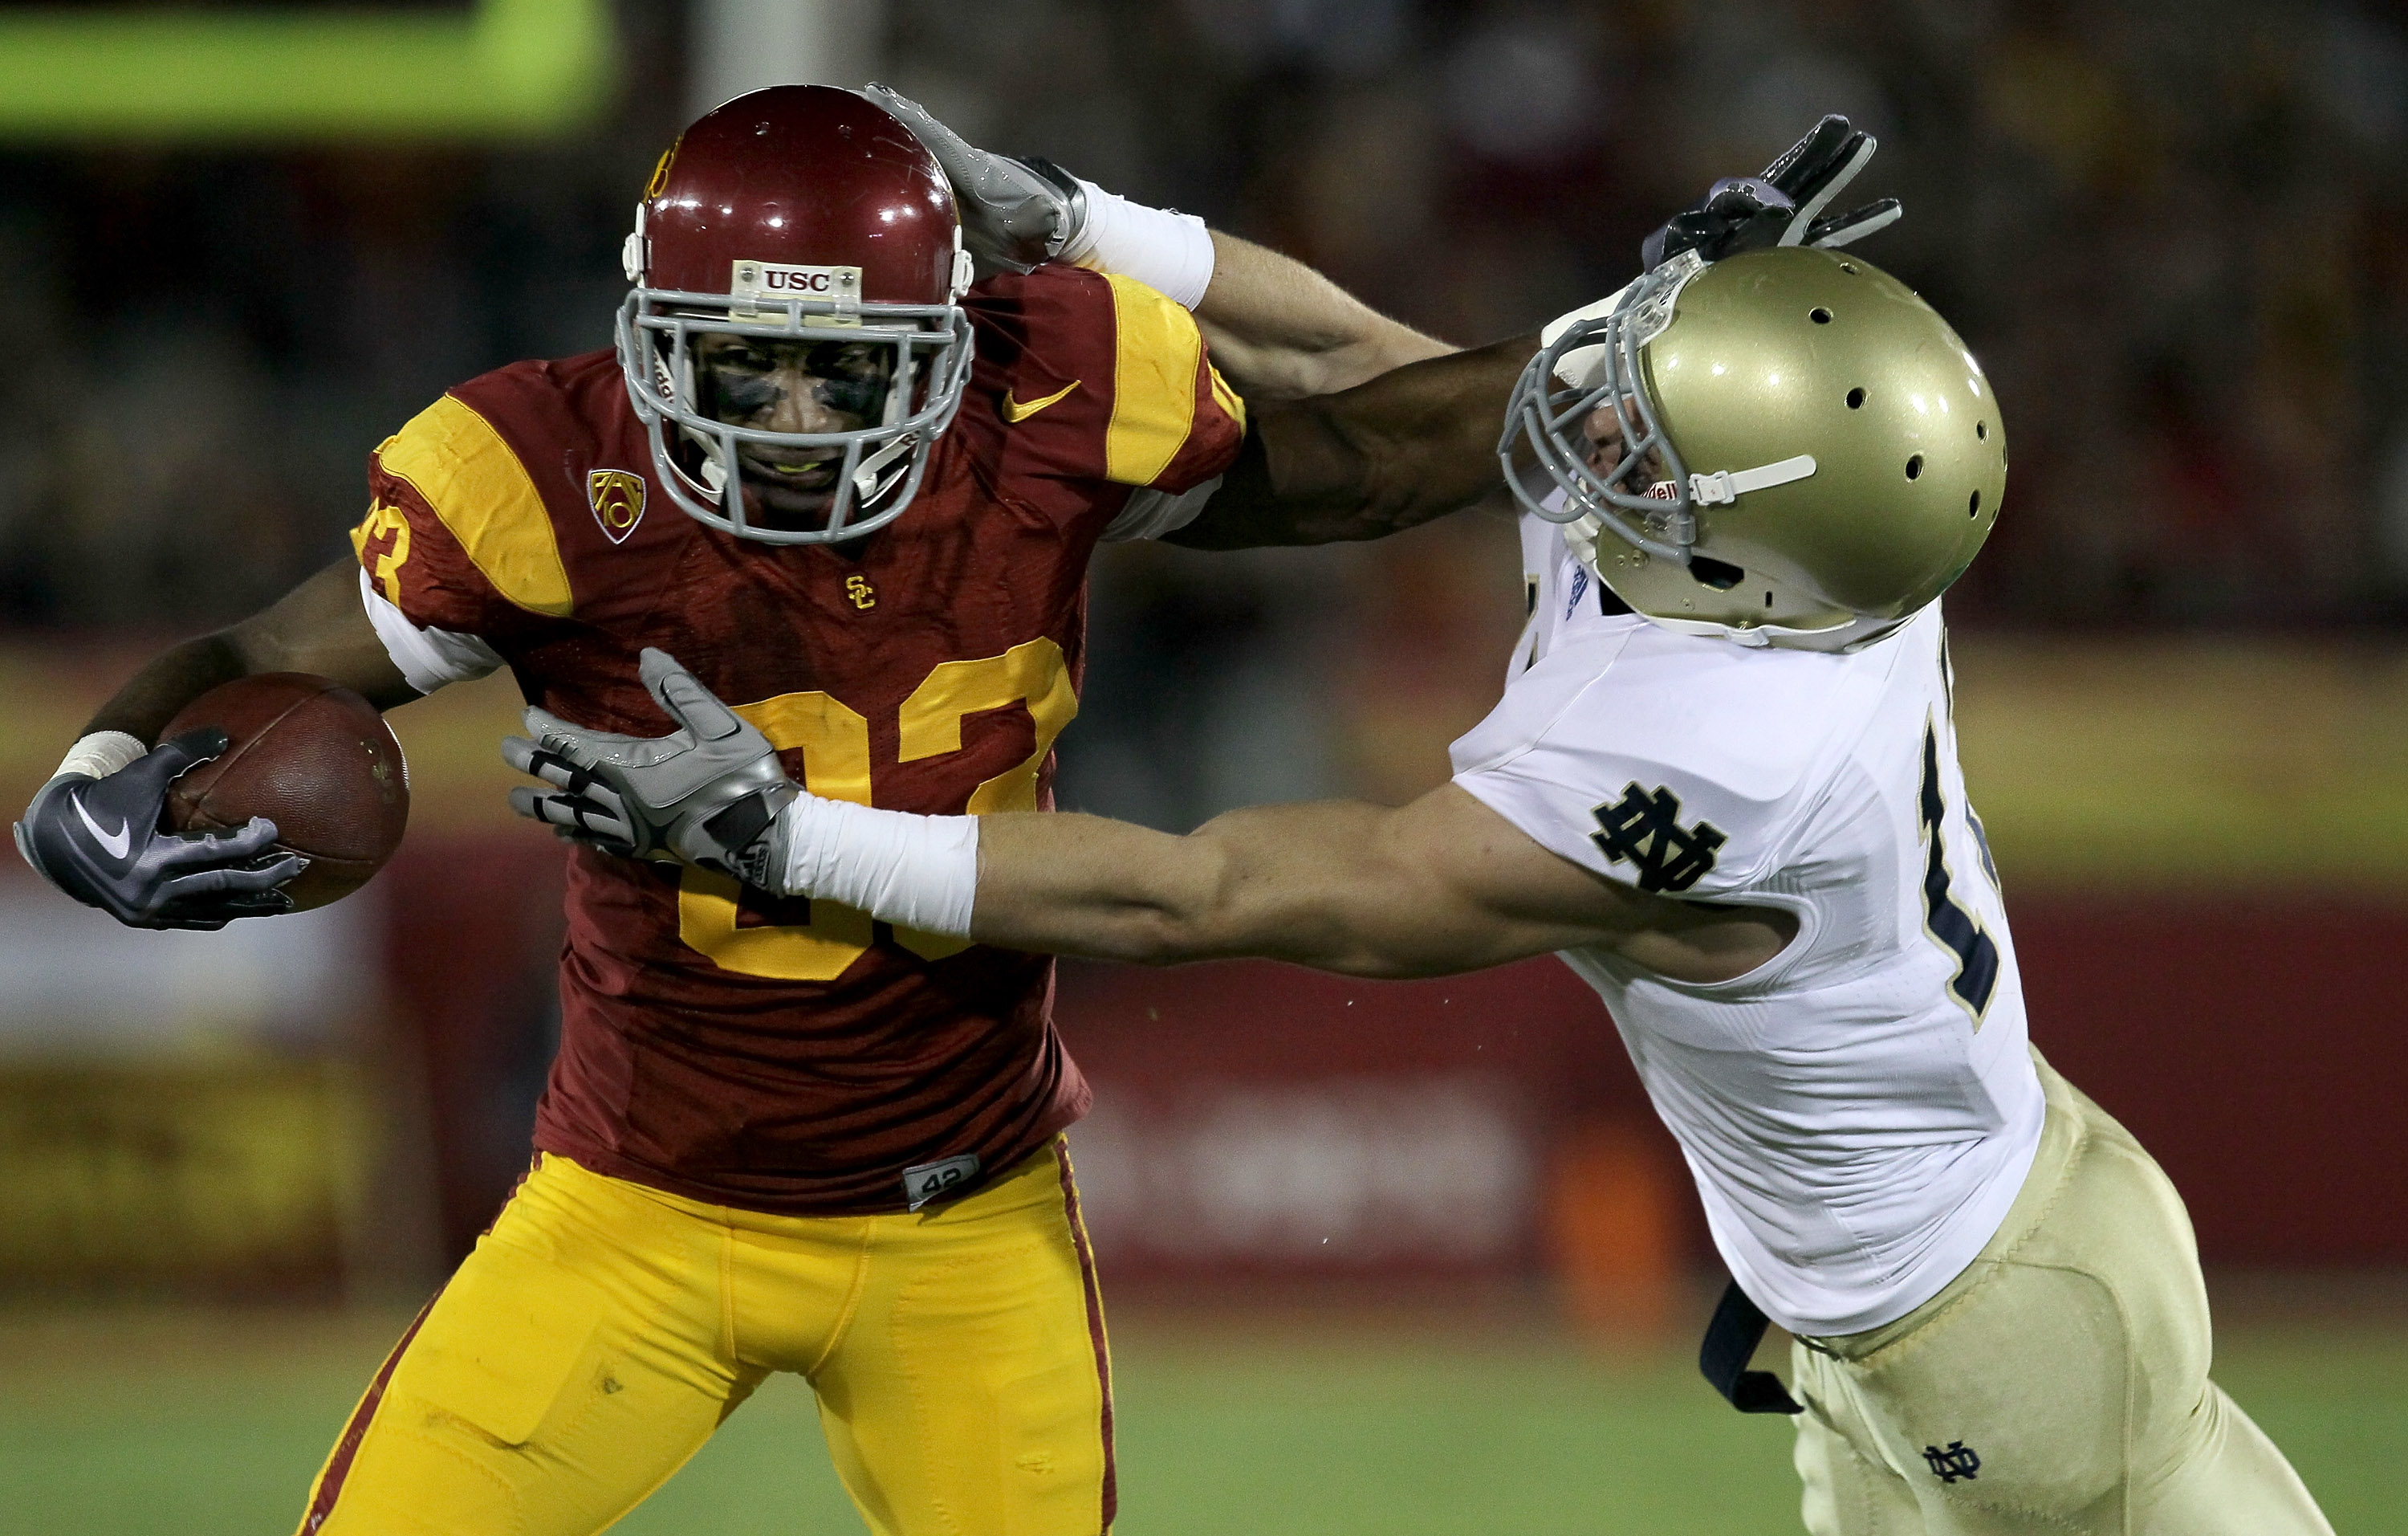 LOS ANGELES - NOVEMBER 27:  Wide receiver Ronald Johnson #83 of the USC Trojans carries ball against safety Zeke Motta #17 of the Notre Dame Fighting Irish at the Los Angeles Memorial Coliseum on November 27, 2010 in Los Angeles, California.   (Photo by S